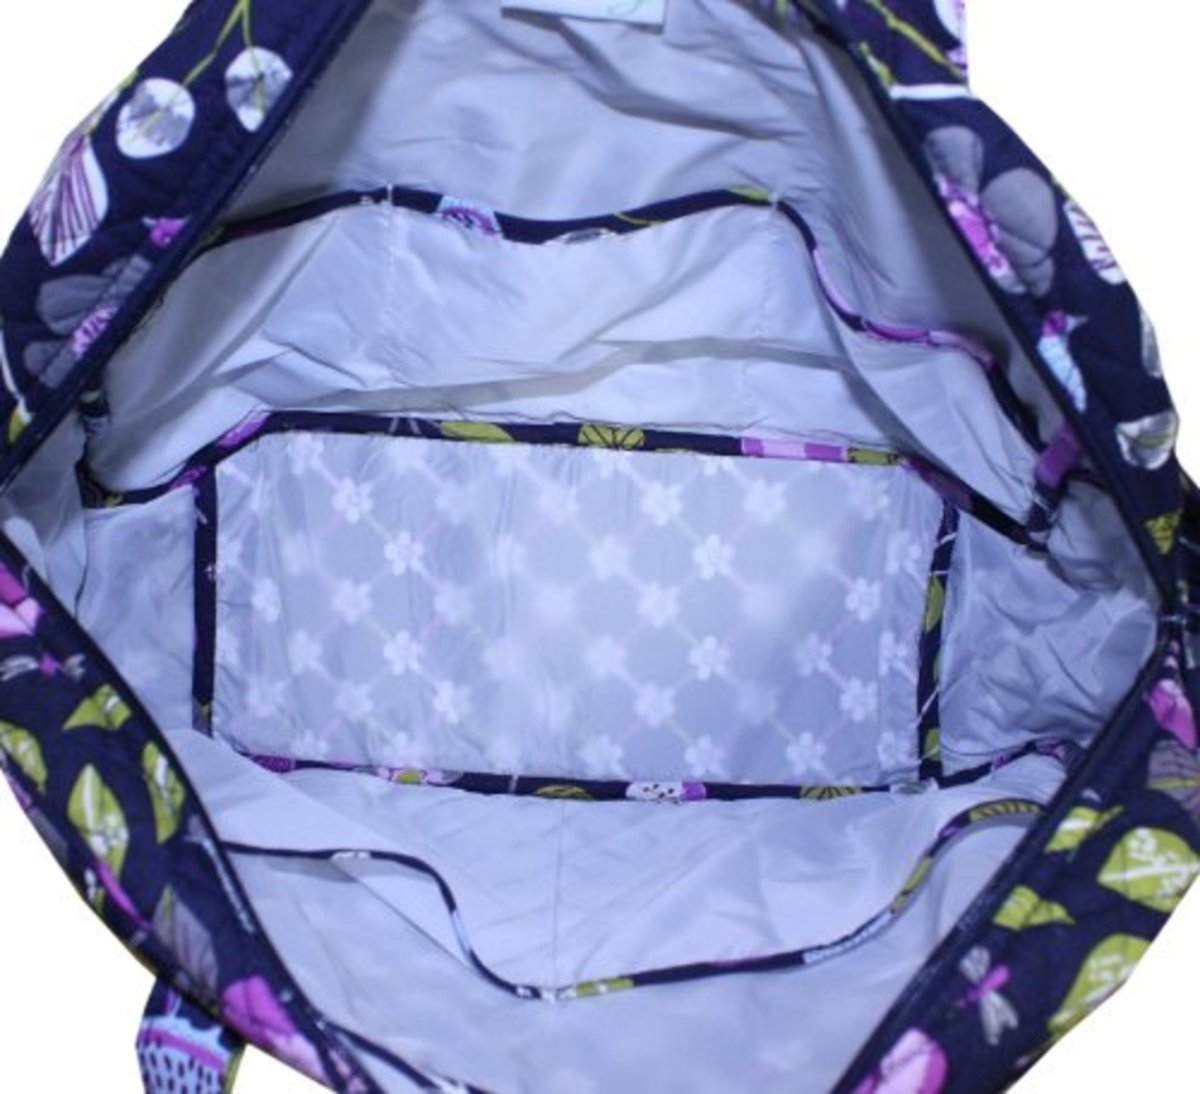 This is a huge bag with a very spacious interior.